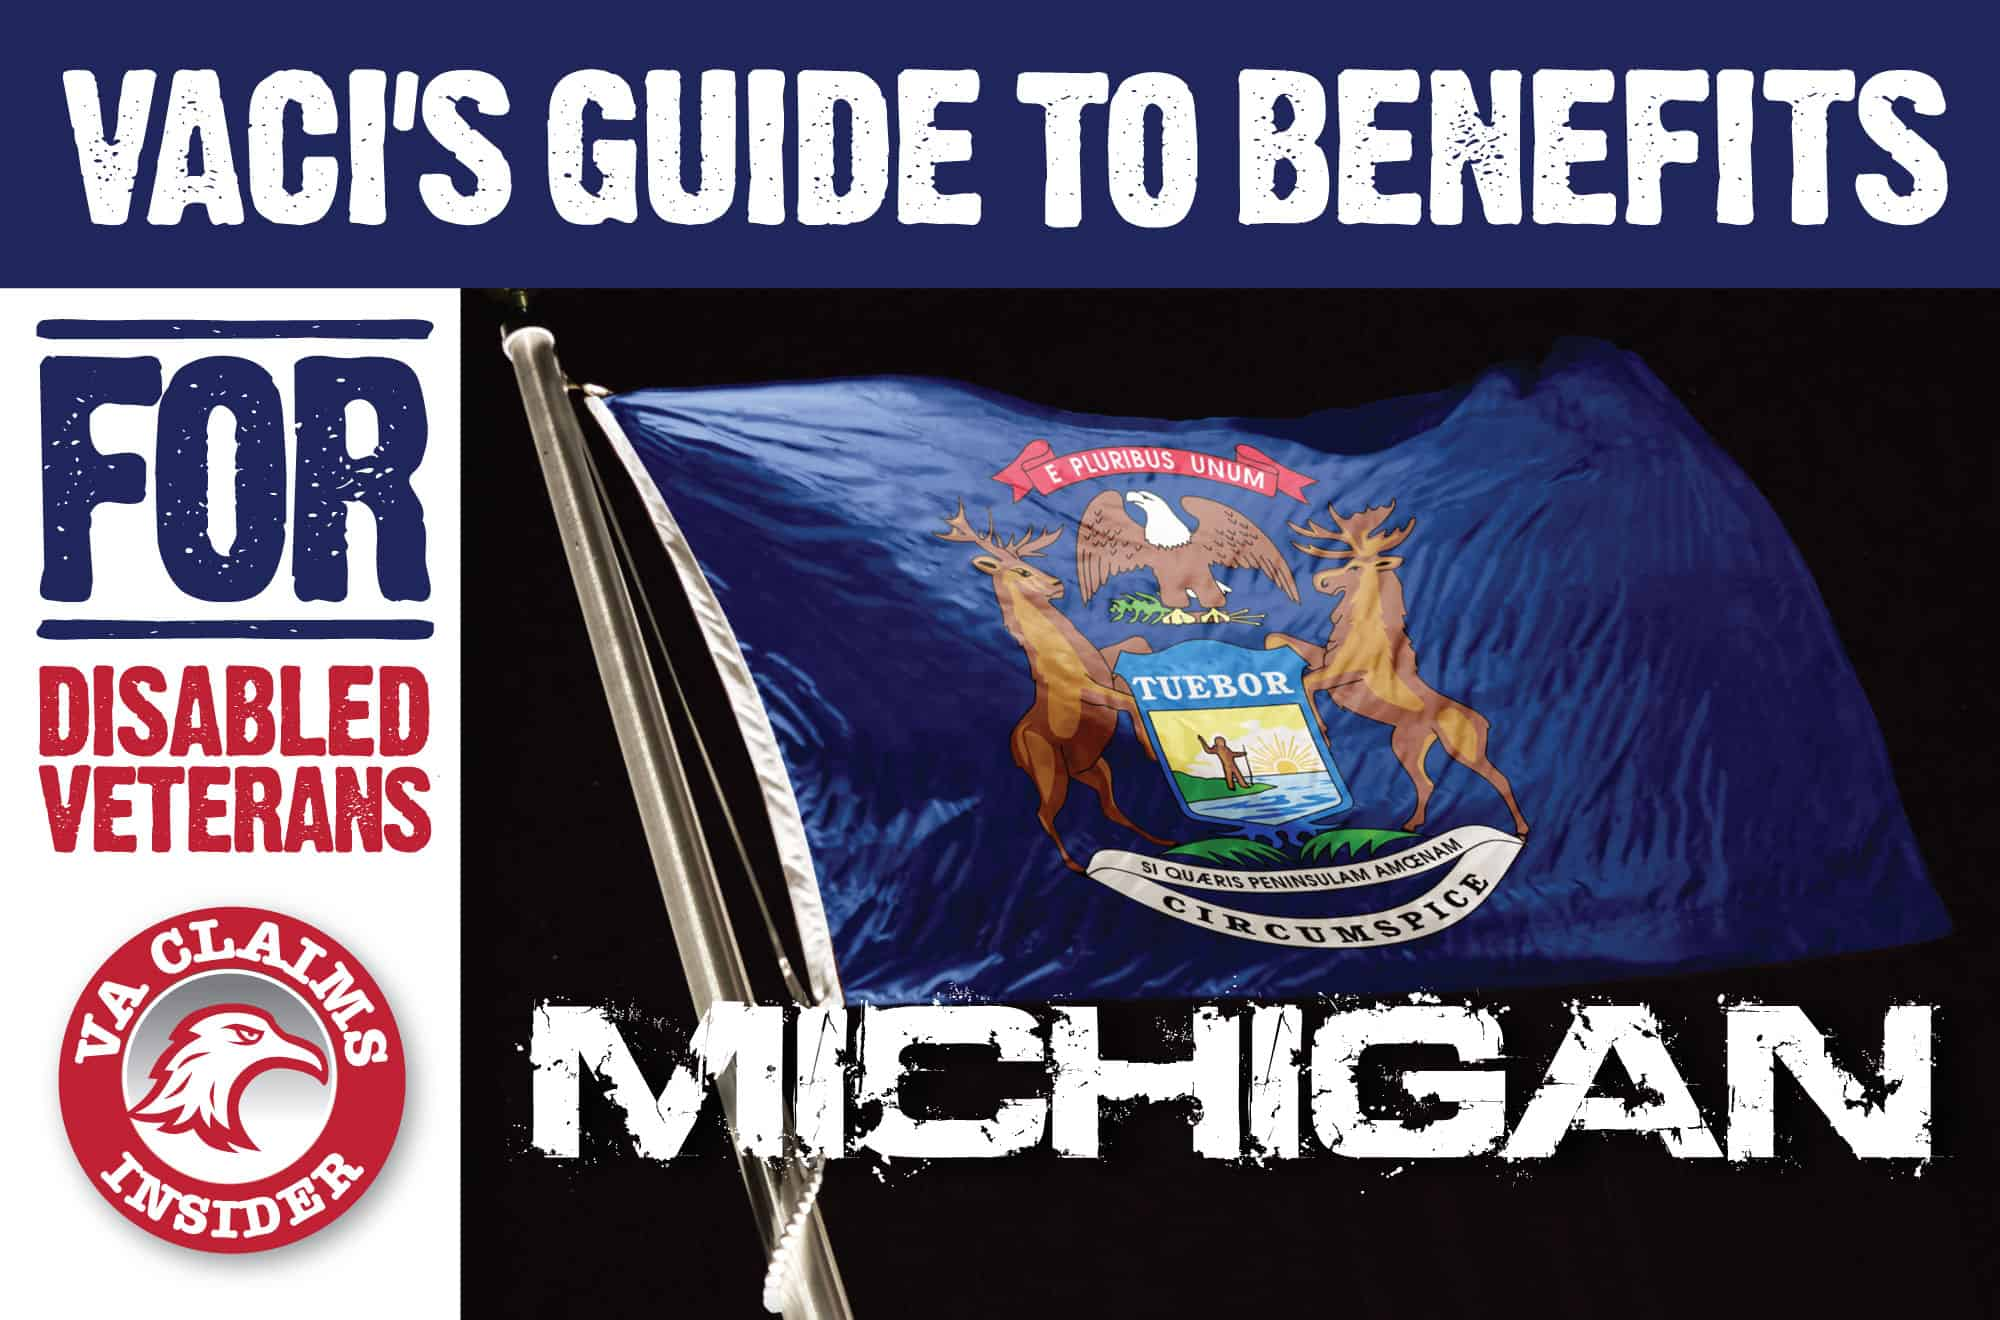 Michigan veterans benefits